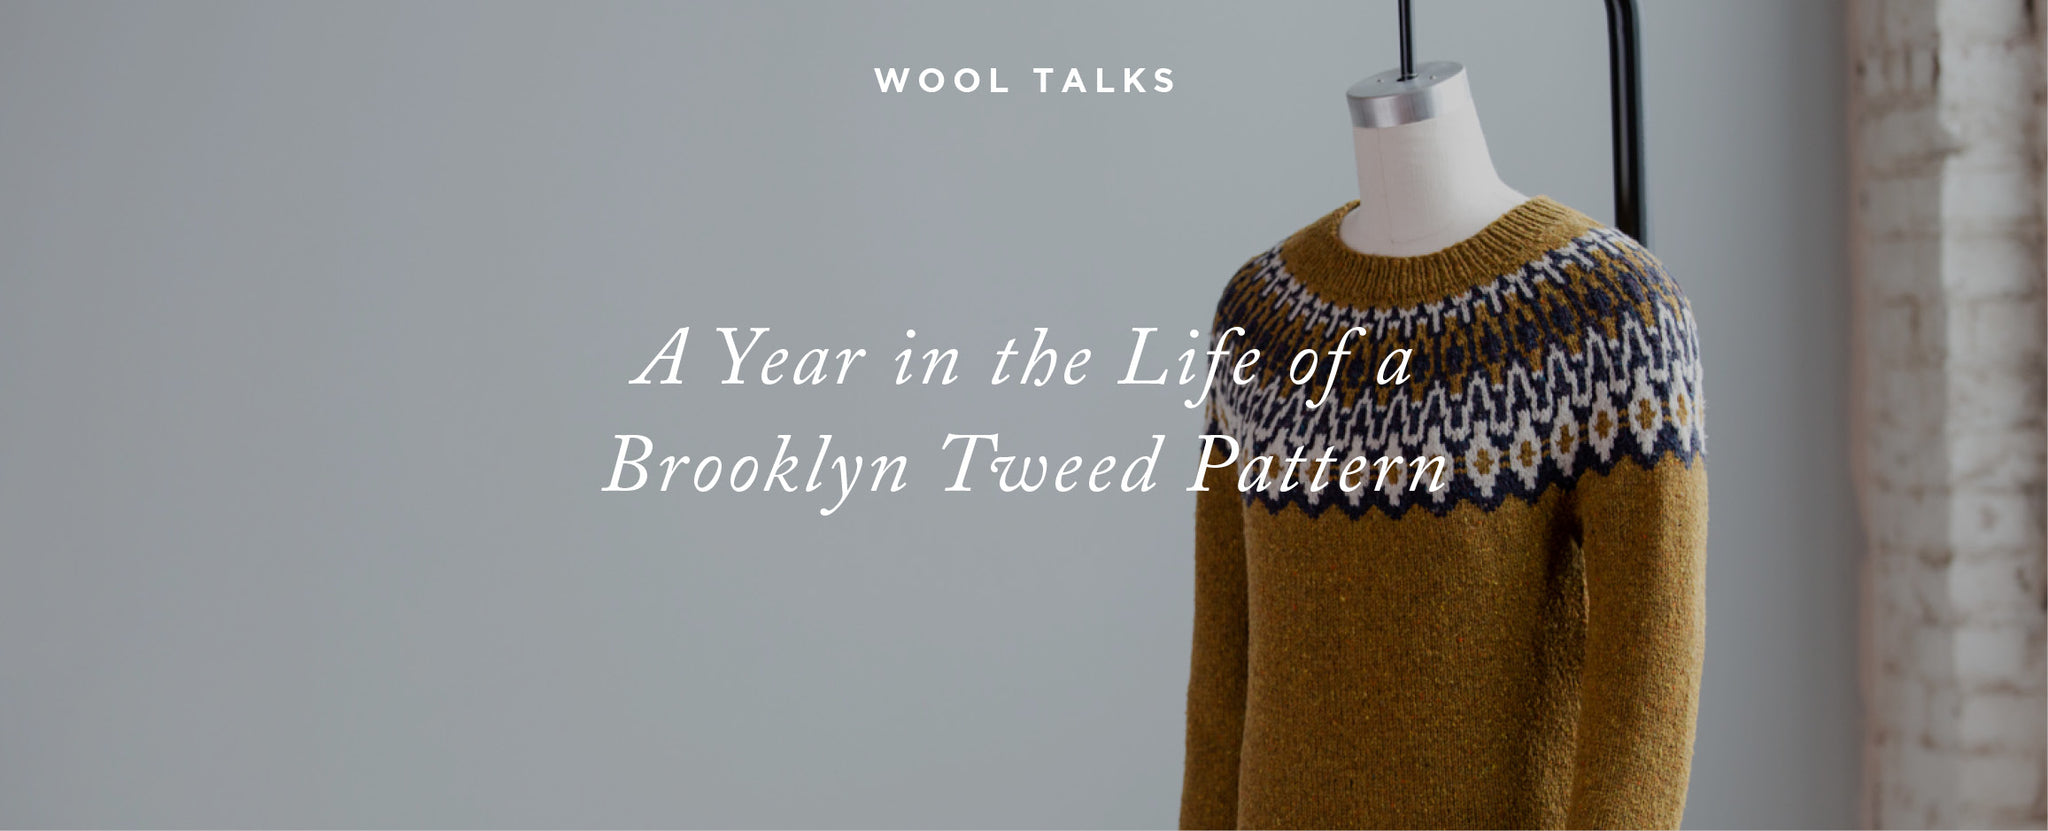 Wool Talks: A Year in the Life of a Brooklyn Tweed Pattern, Pre-Publication